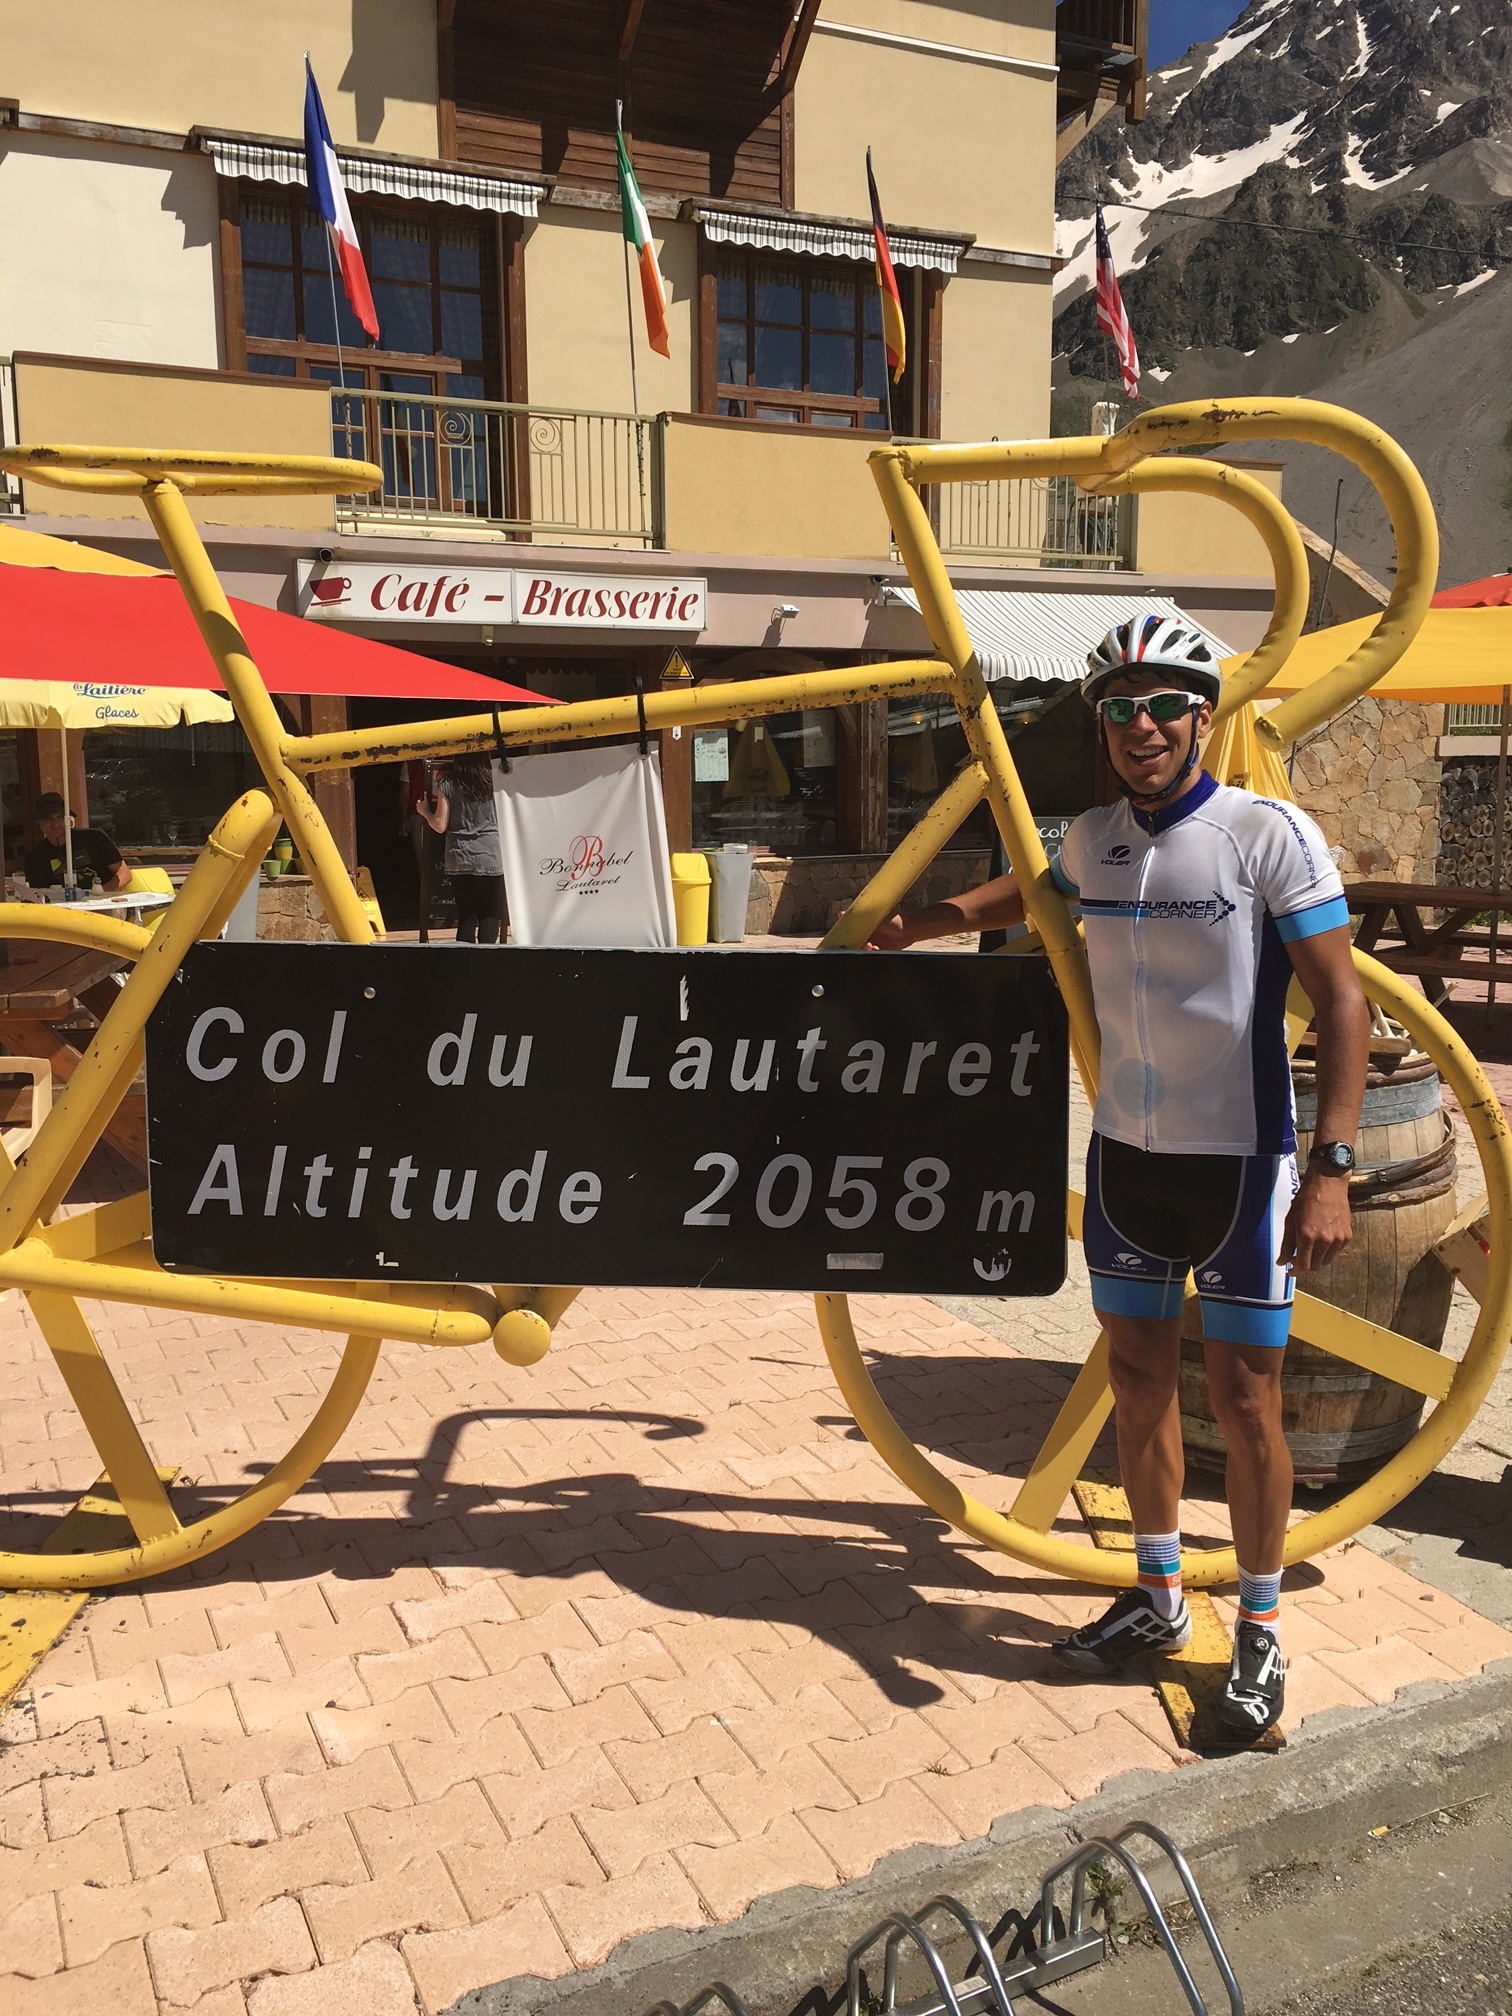 Col du Lautaret Summit - Post six choco chip cookies